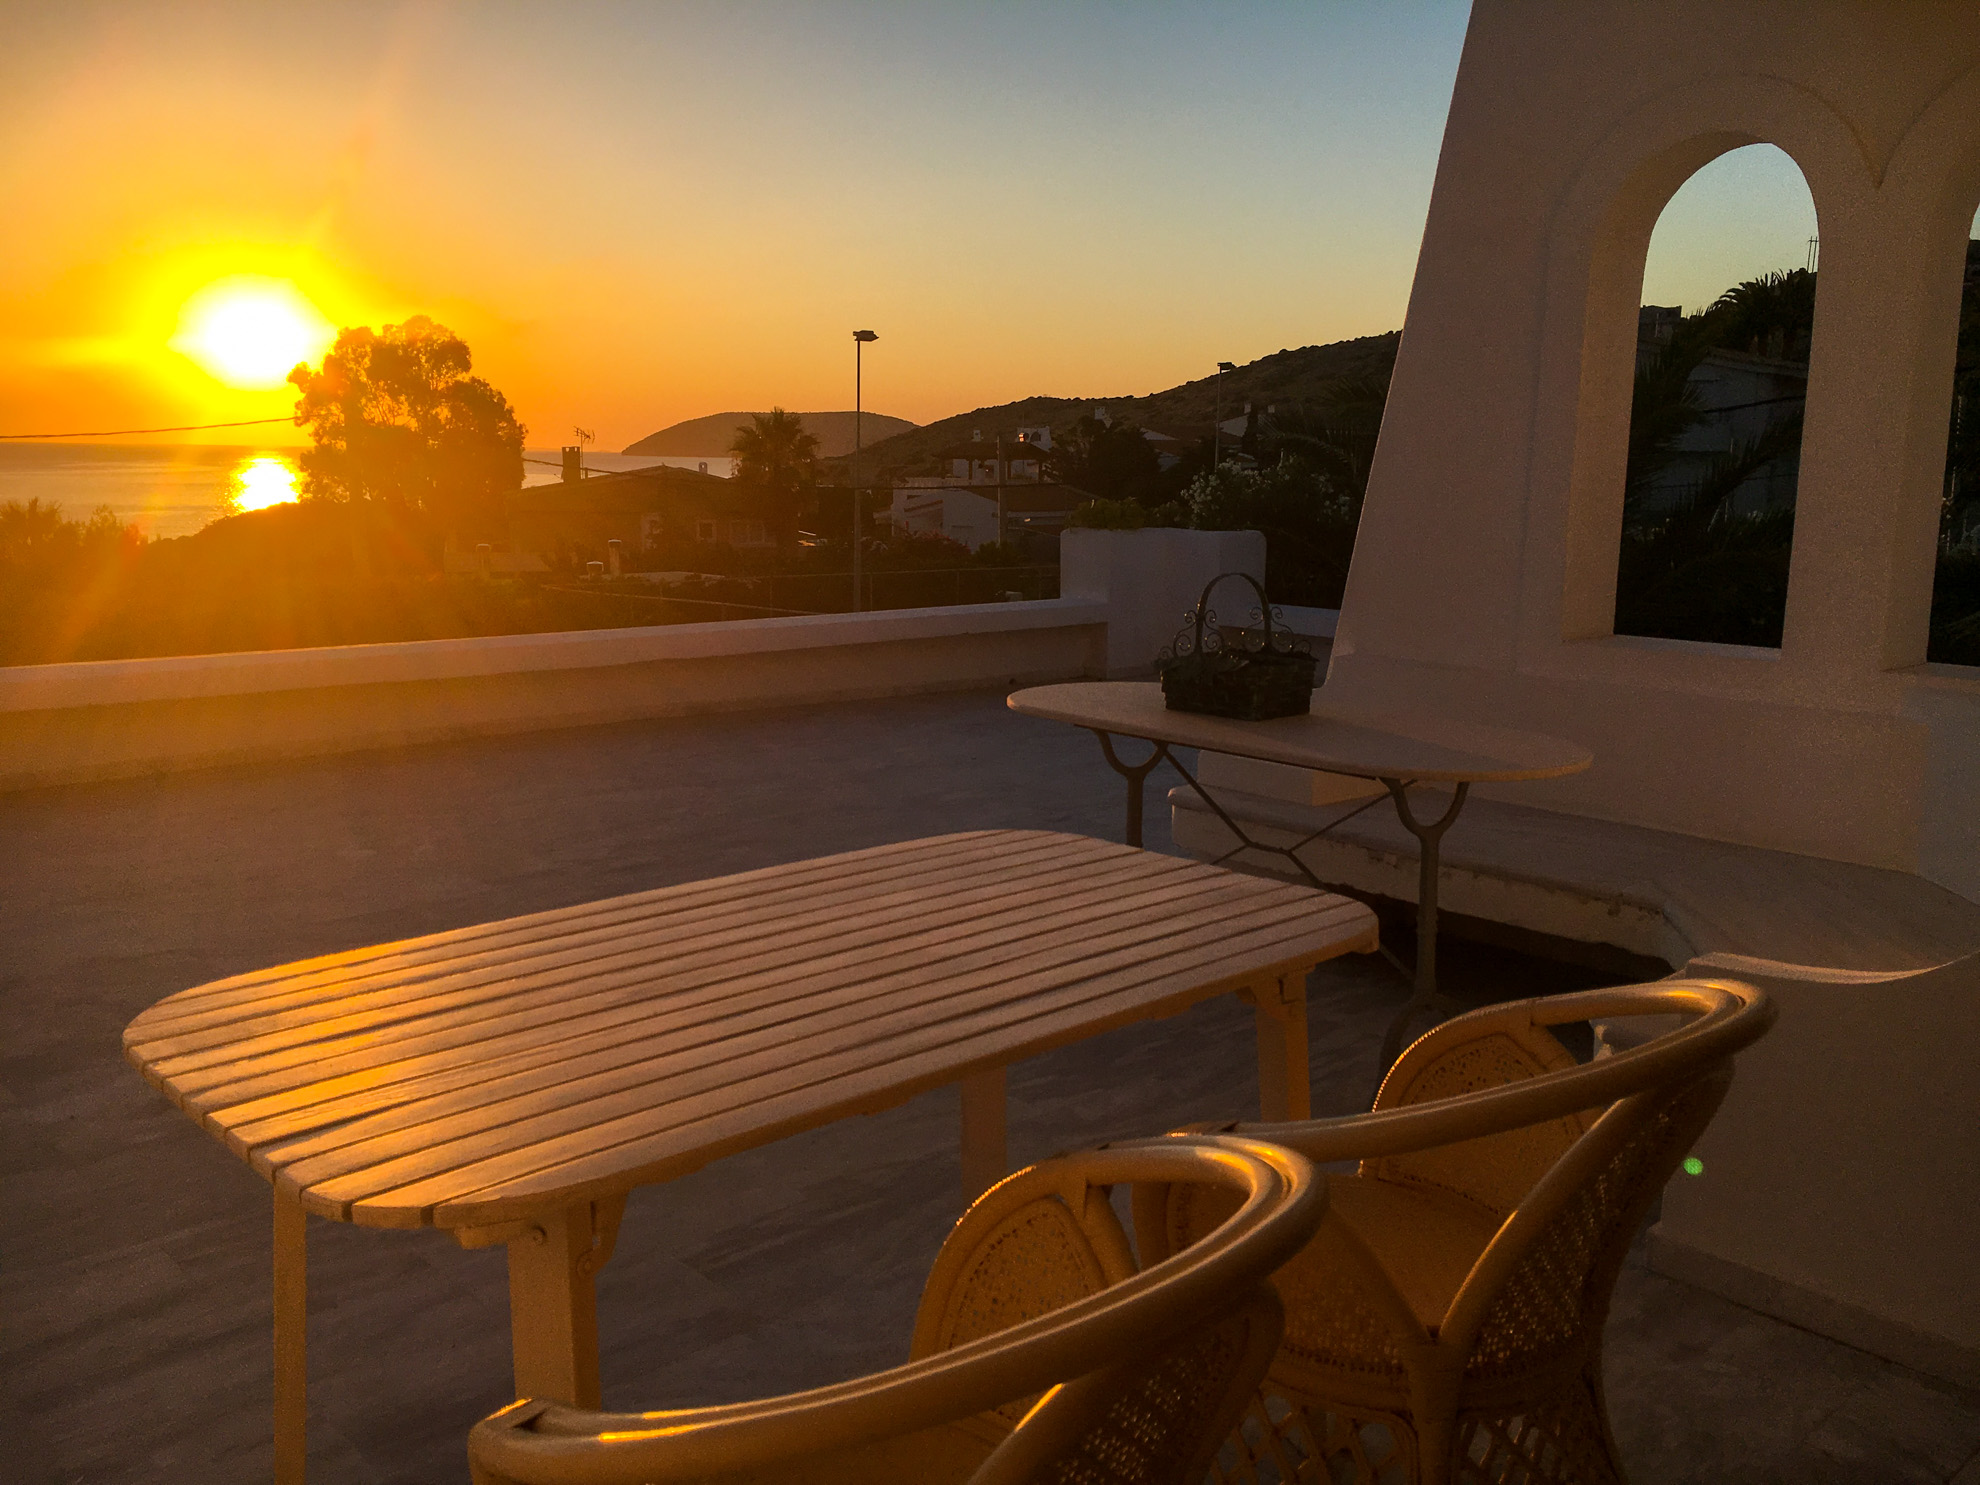 Villa With Sunset And Sea View At Anavissos, 50km Away From Athens